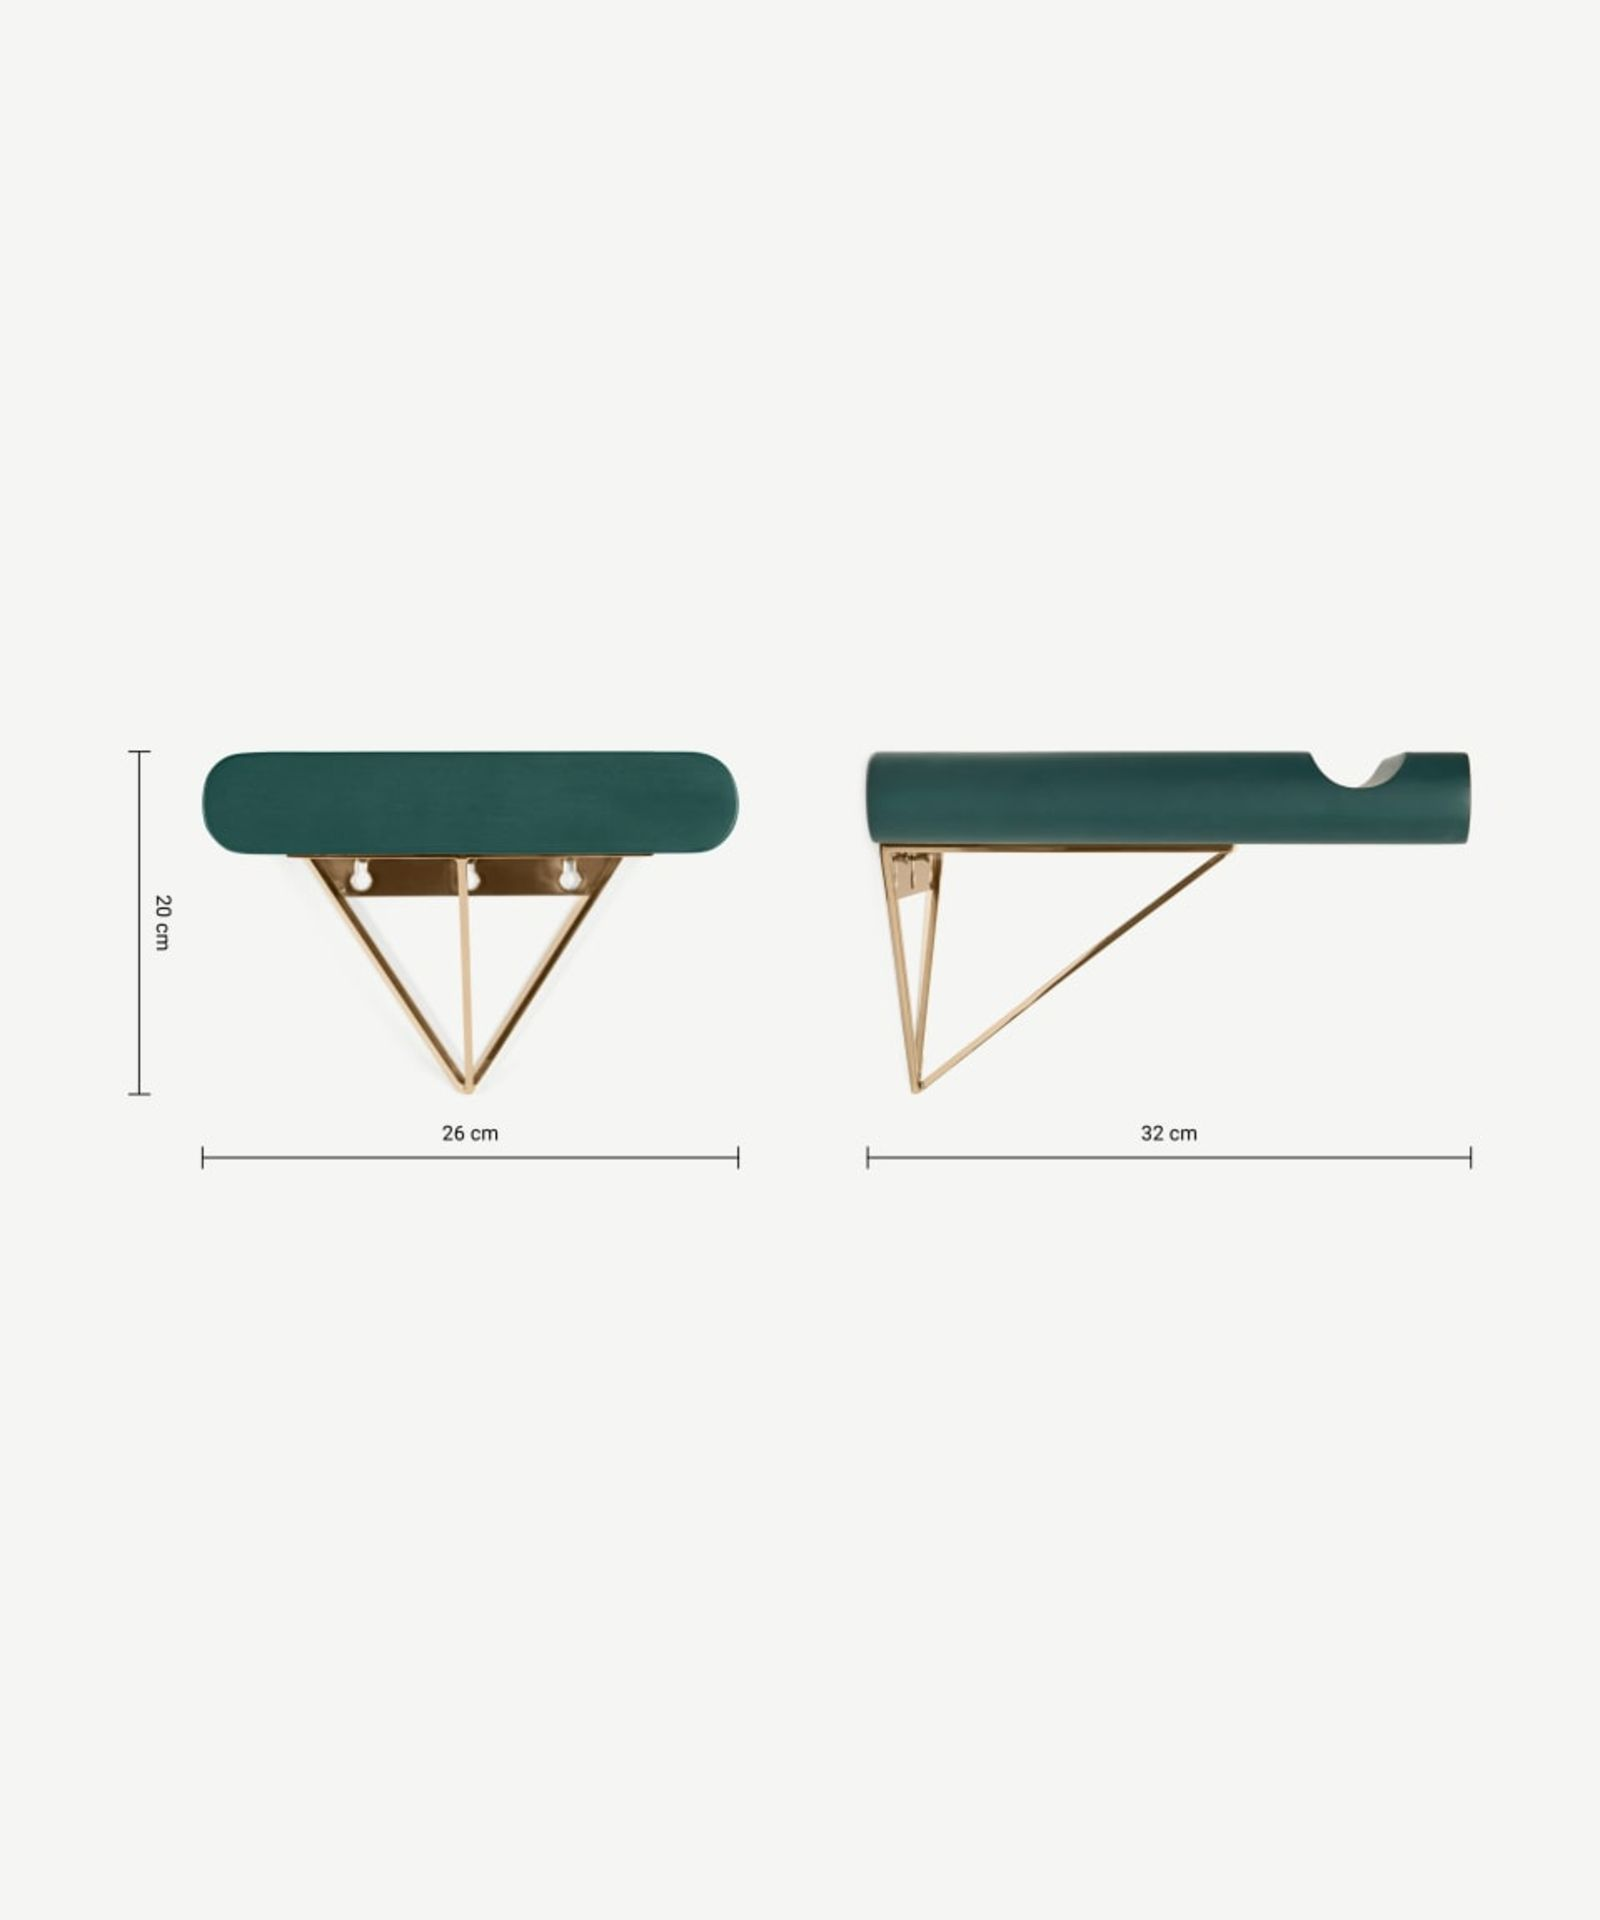 | 1x | Made.com Dayde Bike Stand Teal RRP £45 | SKU MAD-ACCDAY005GRE-UK | RAW | RRP £45 | TOTAL - Image 2 of 2